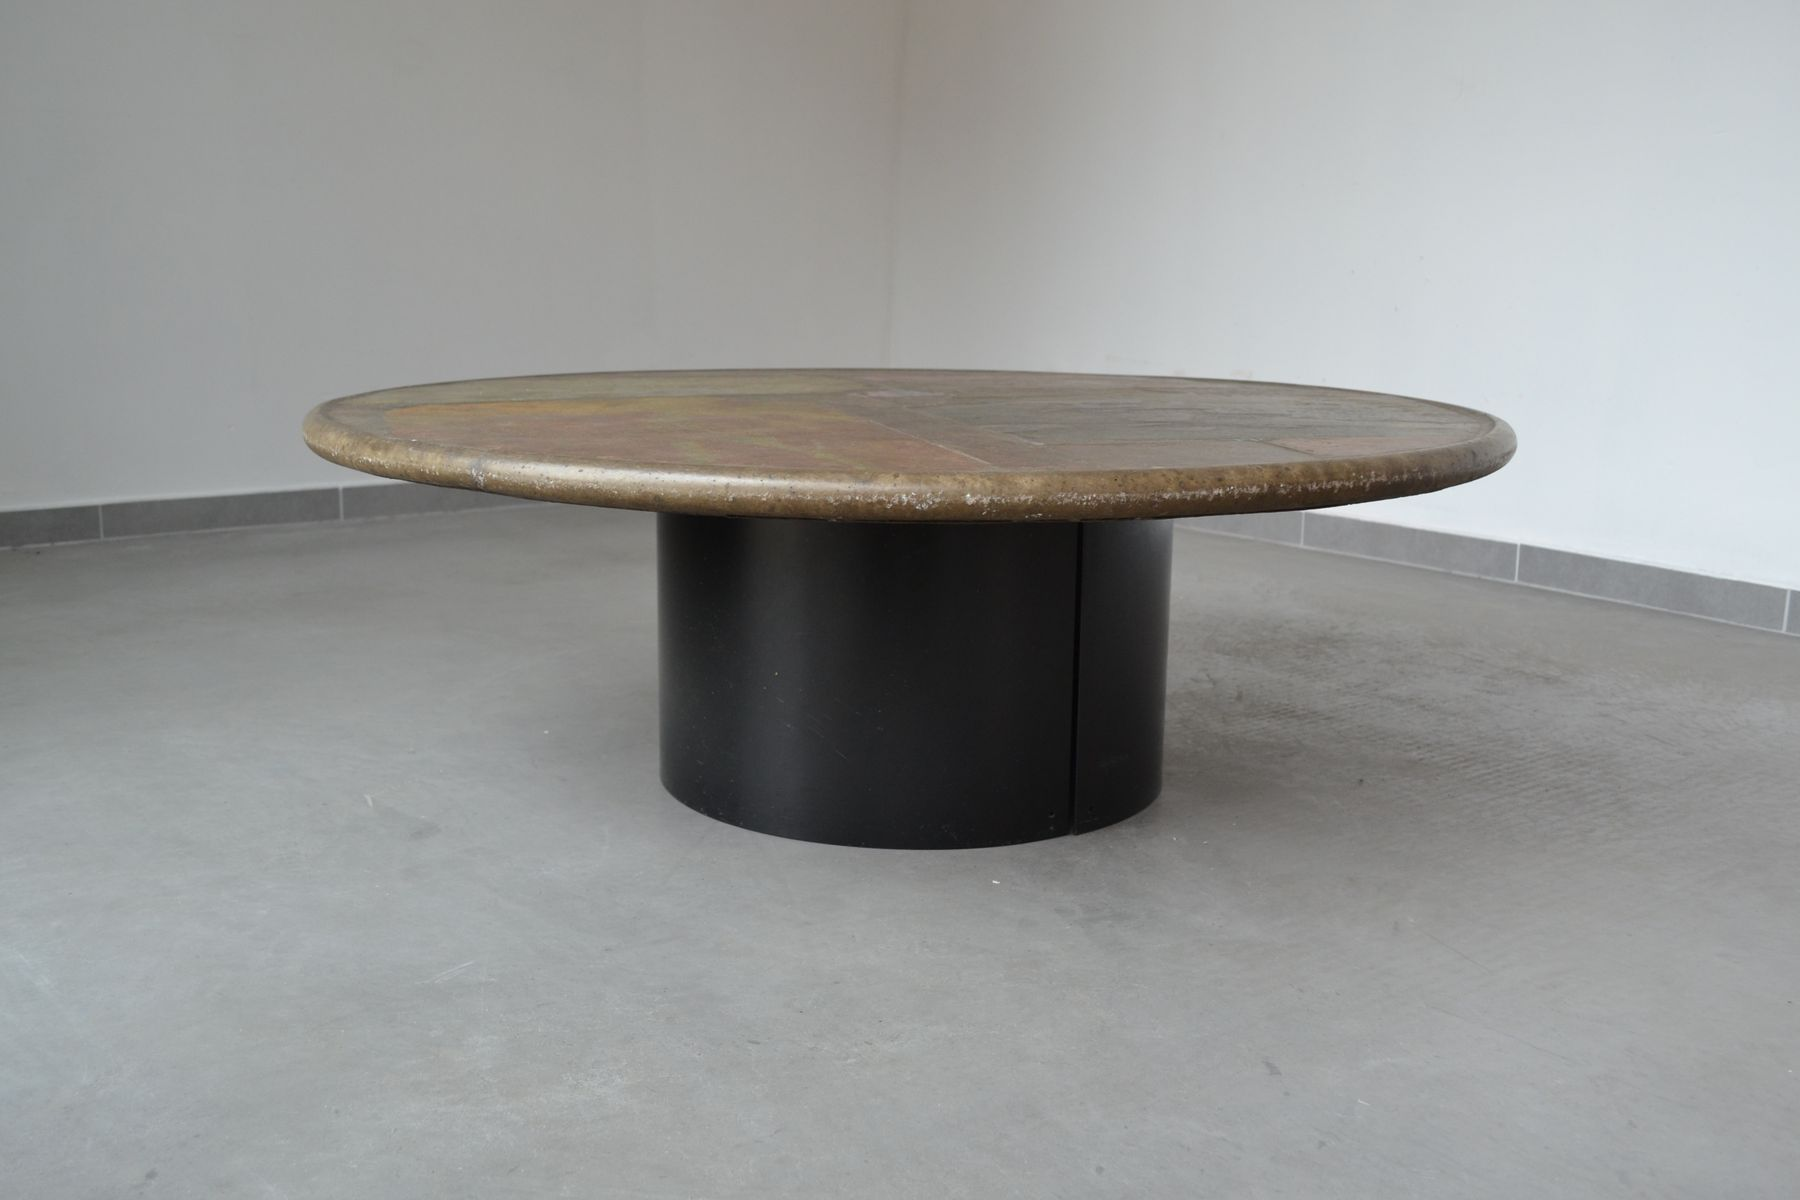 Slate Stone Coffee Table By Paul Kingma 1993 For Sale At Pamono